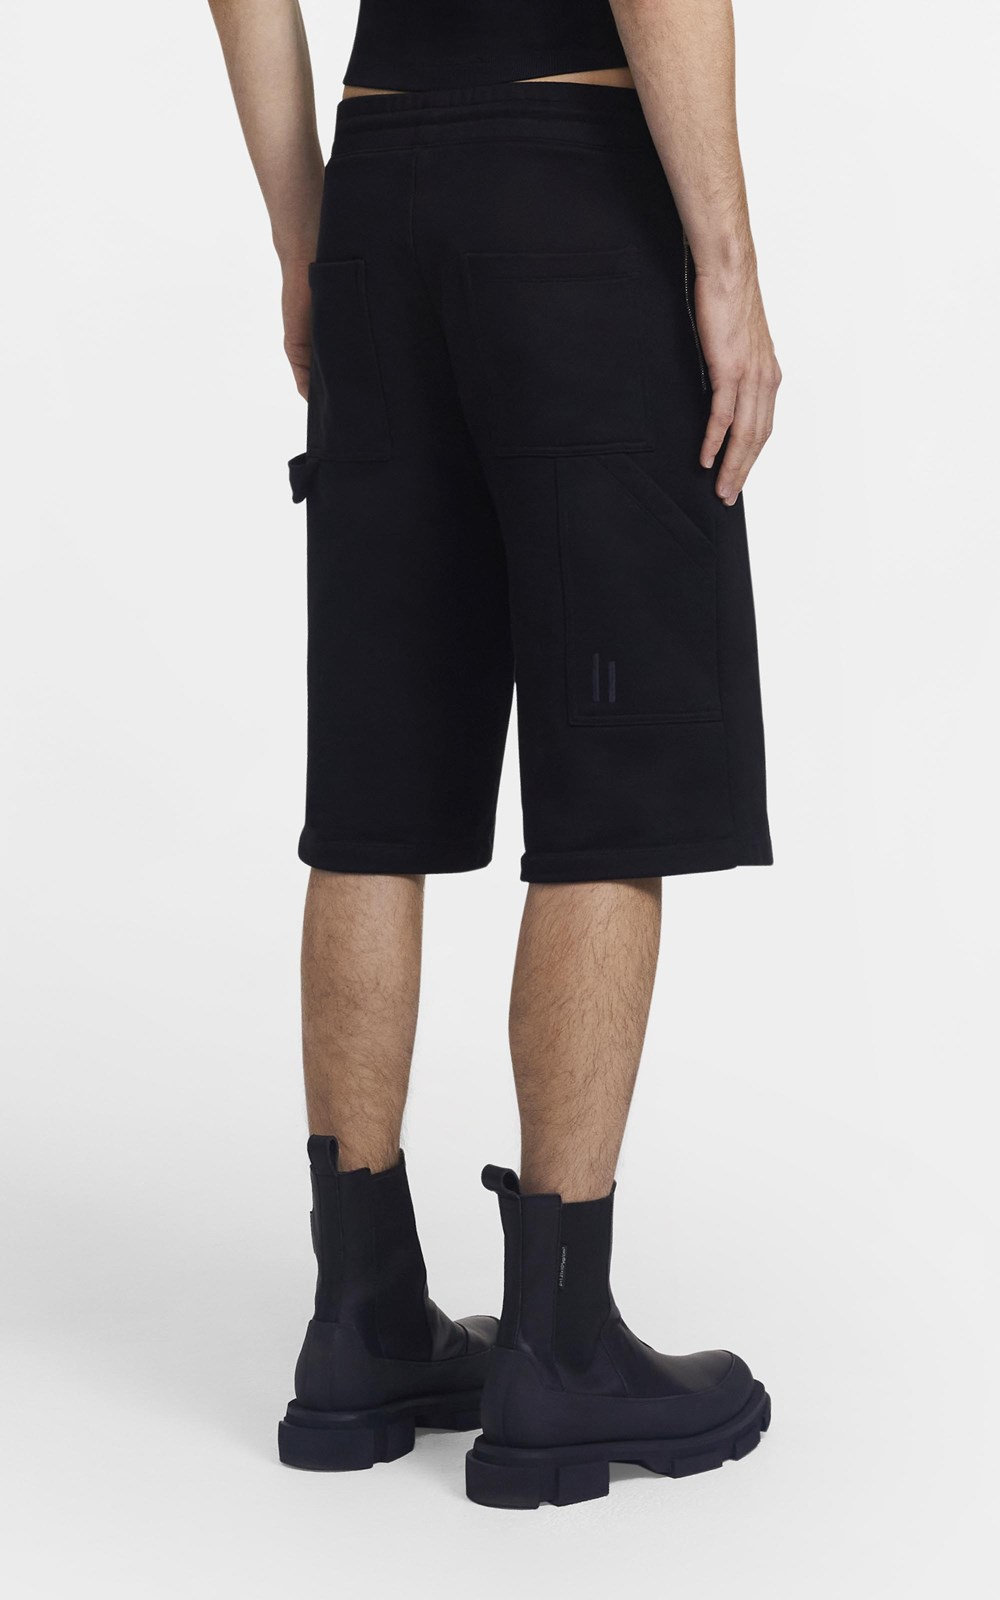 Pants | UTILITY TRACK SHORT